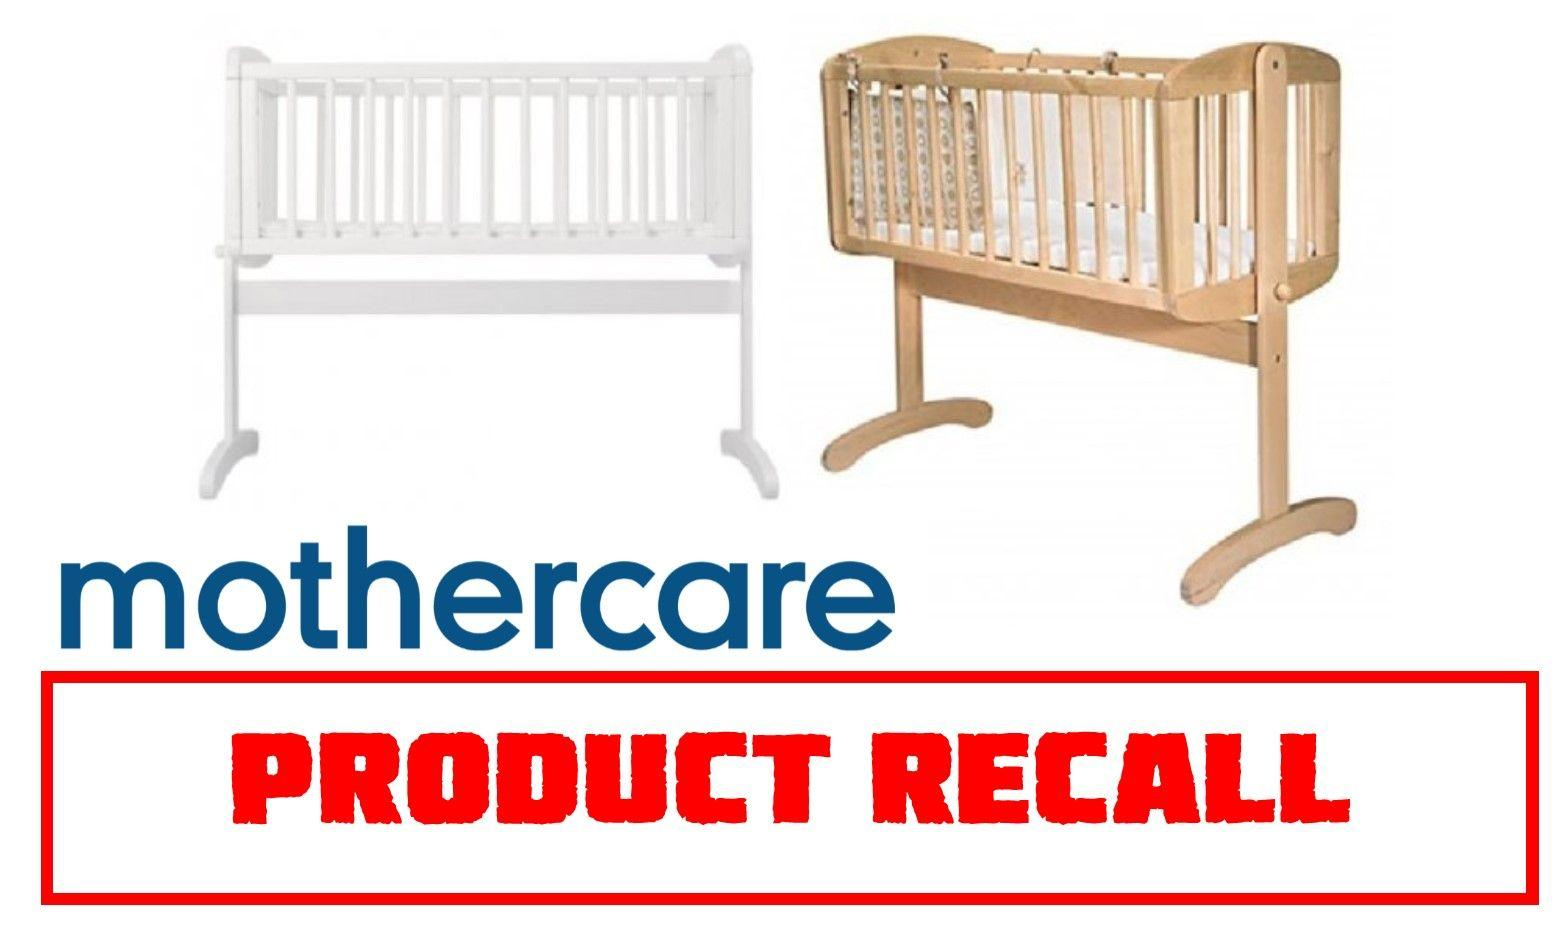 Mothercare Recall Baby Crib Due to Safety Fears